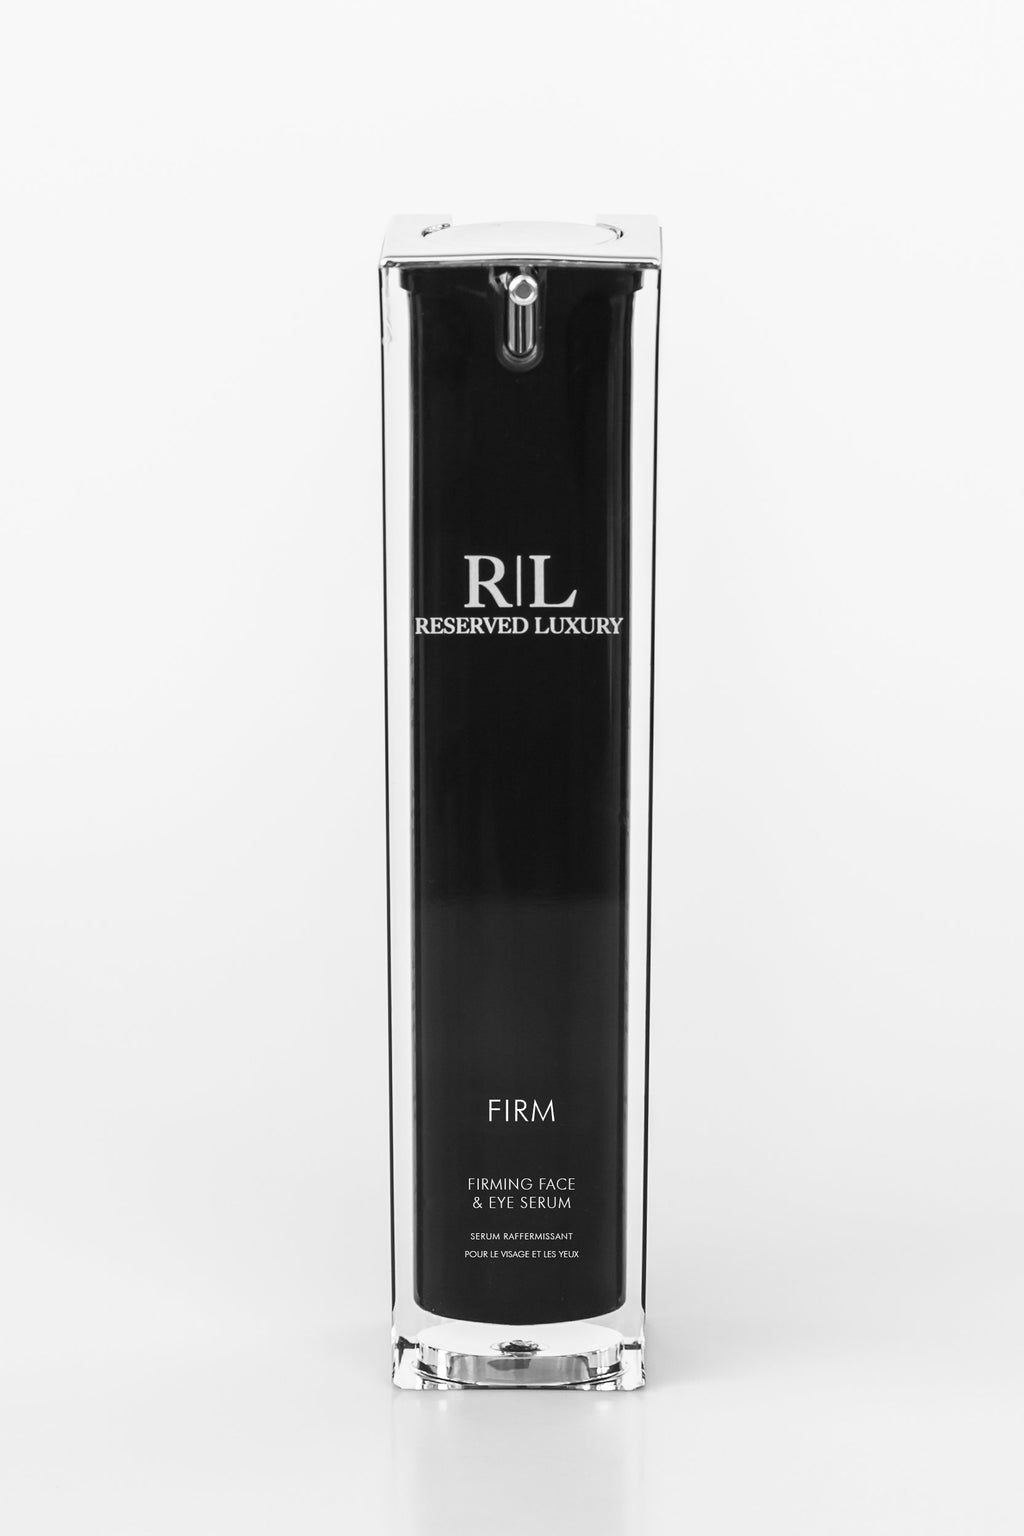 FIRM-FIRMING FACE AND EYE SERUM